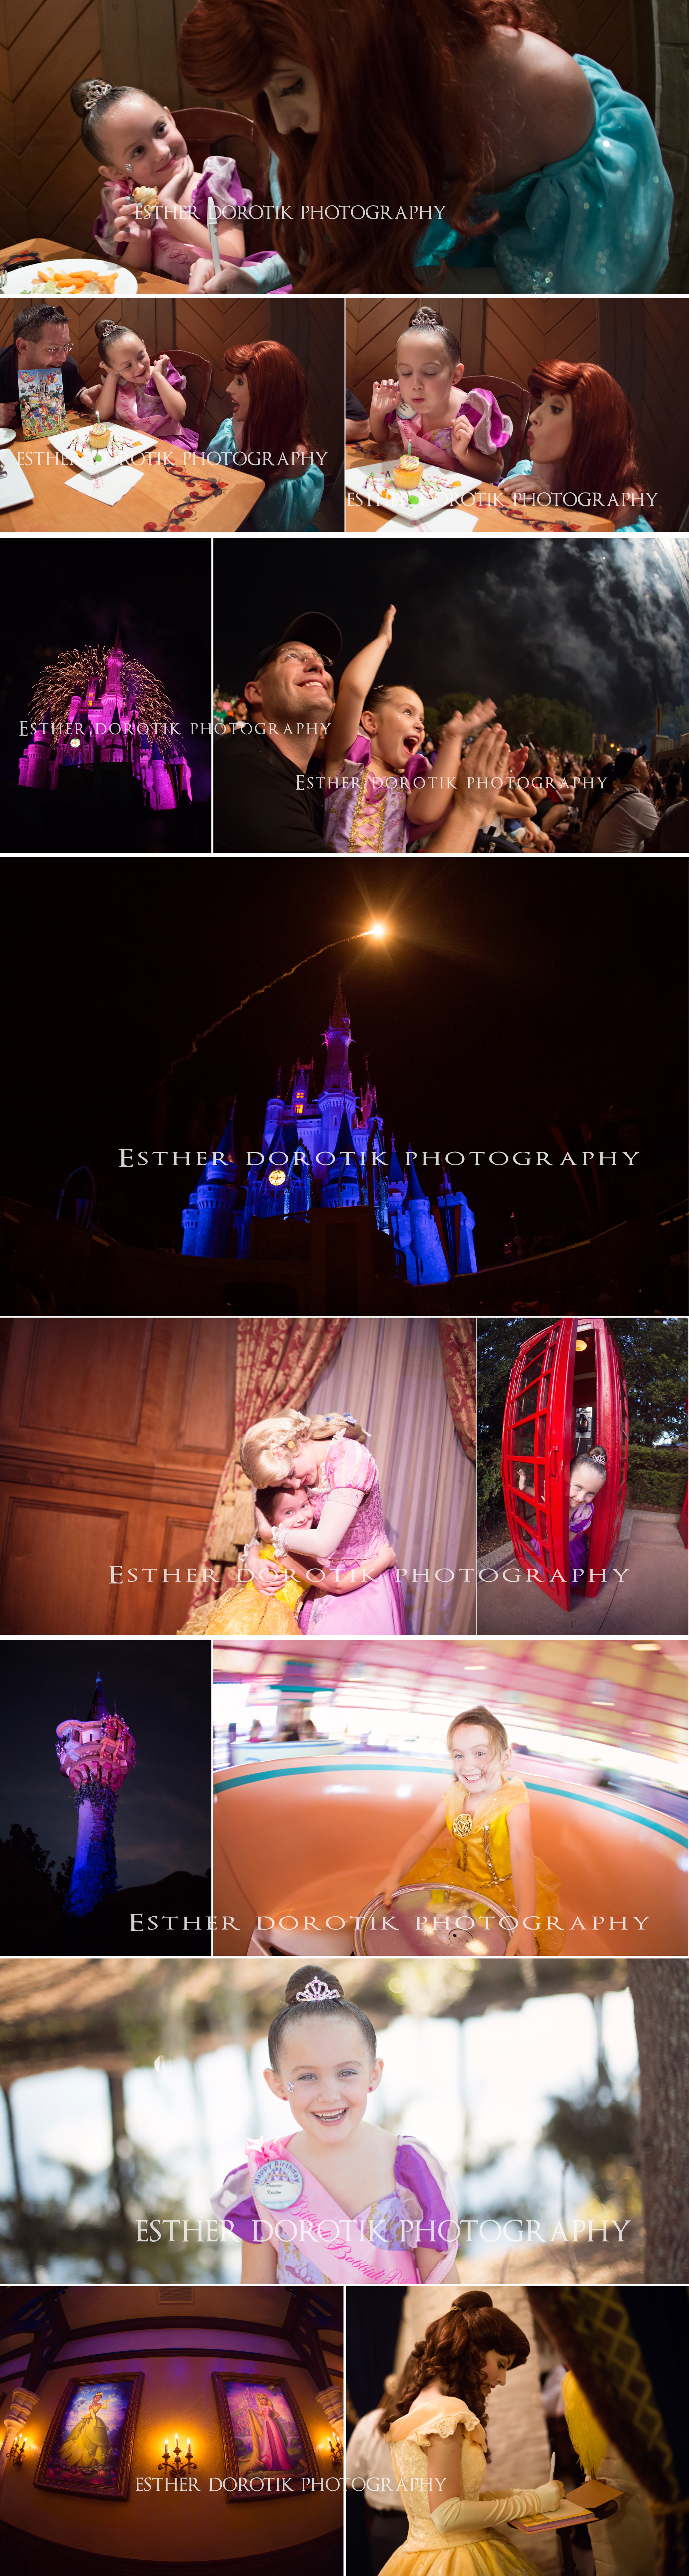 child-photography-at-walt-disney-world-by-Dallas-lifestyle-photographer